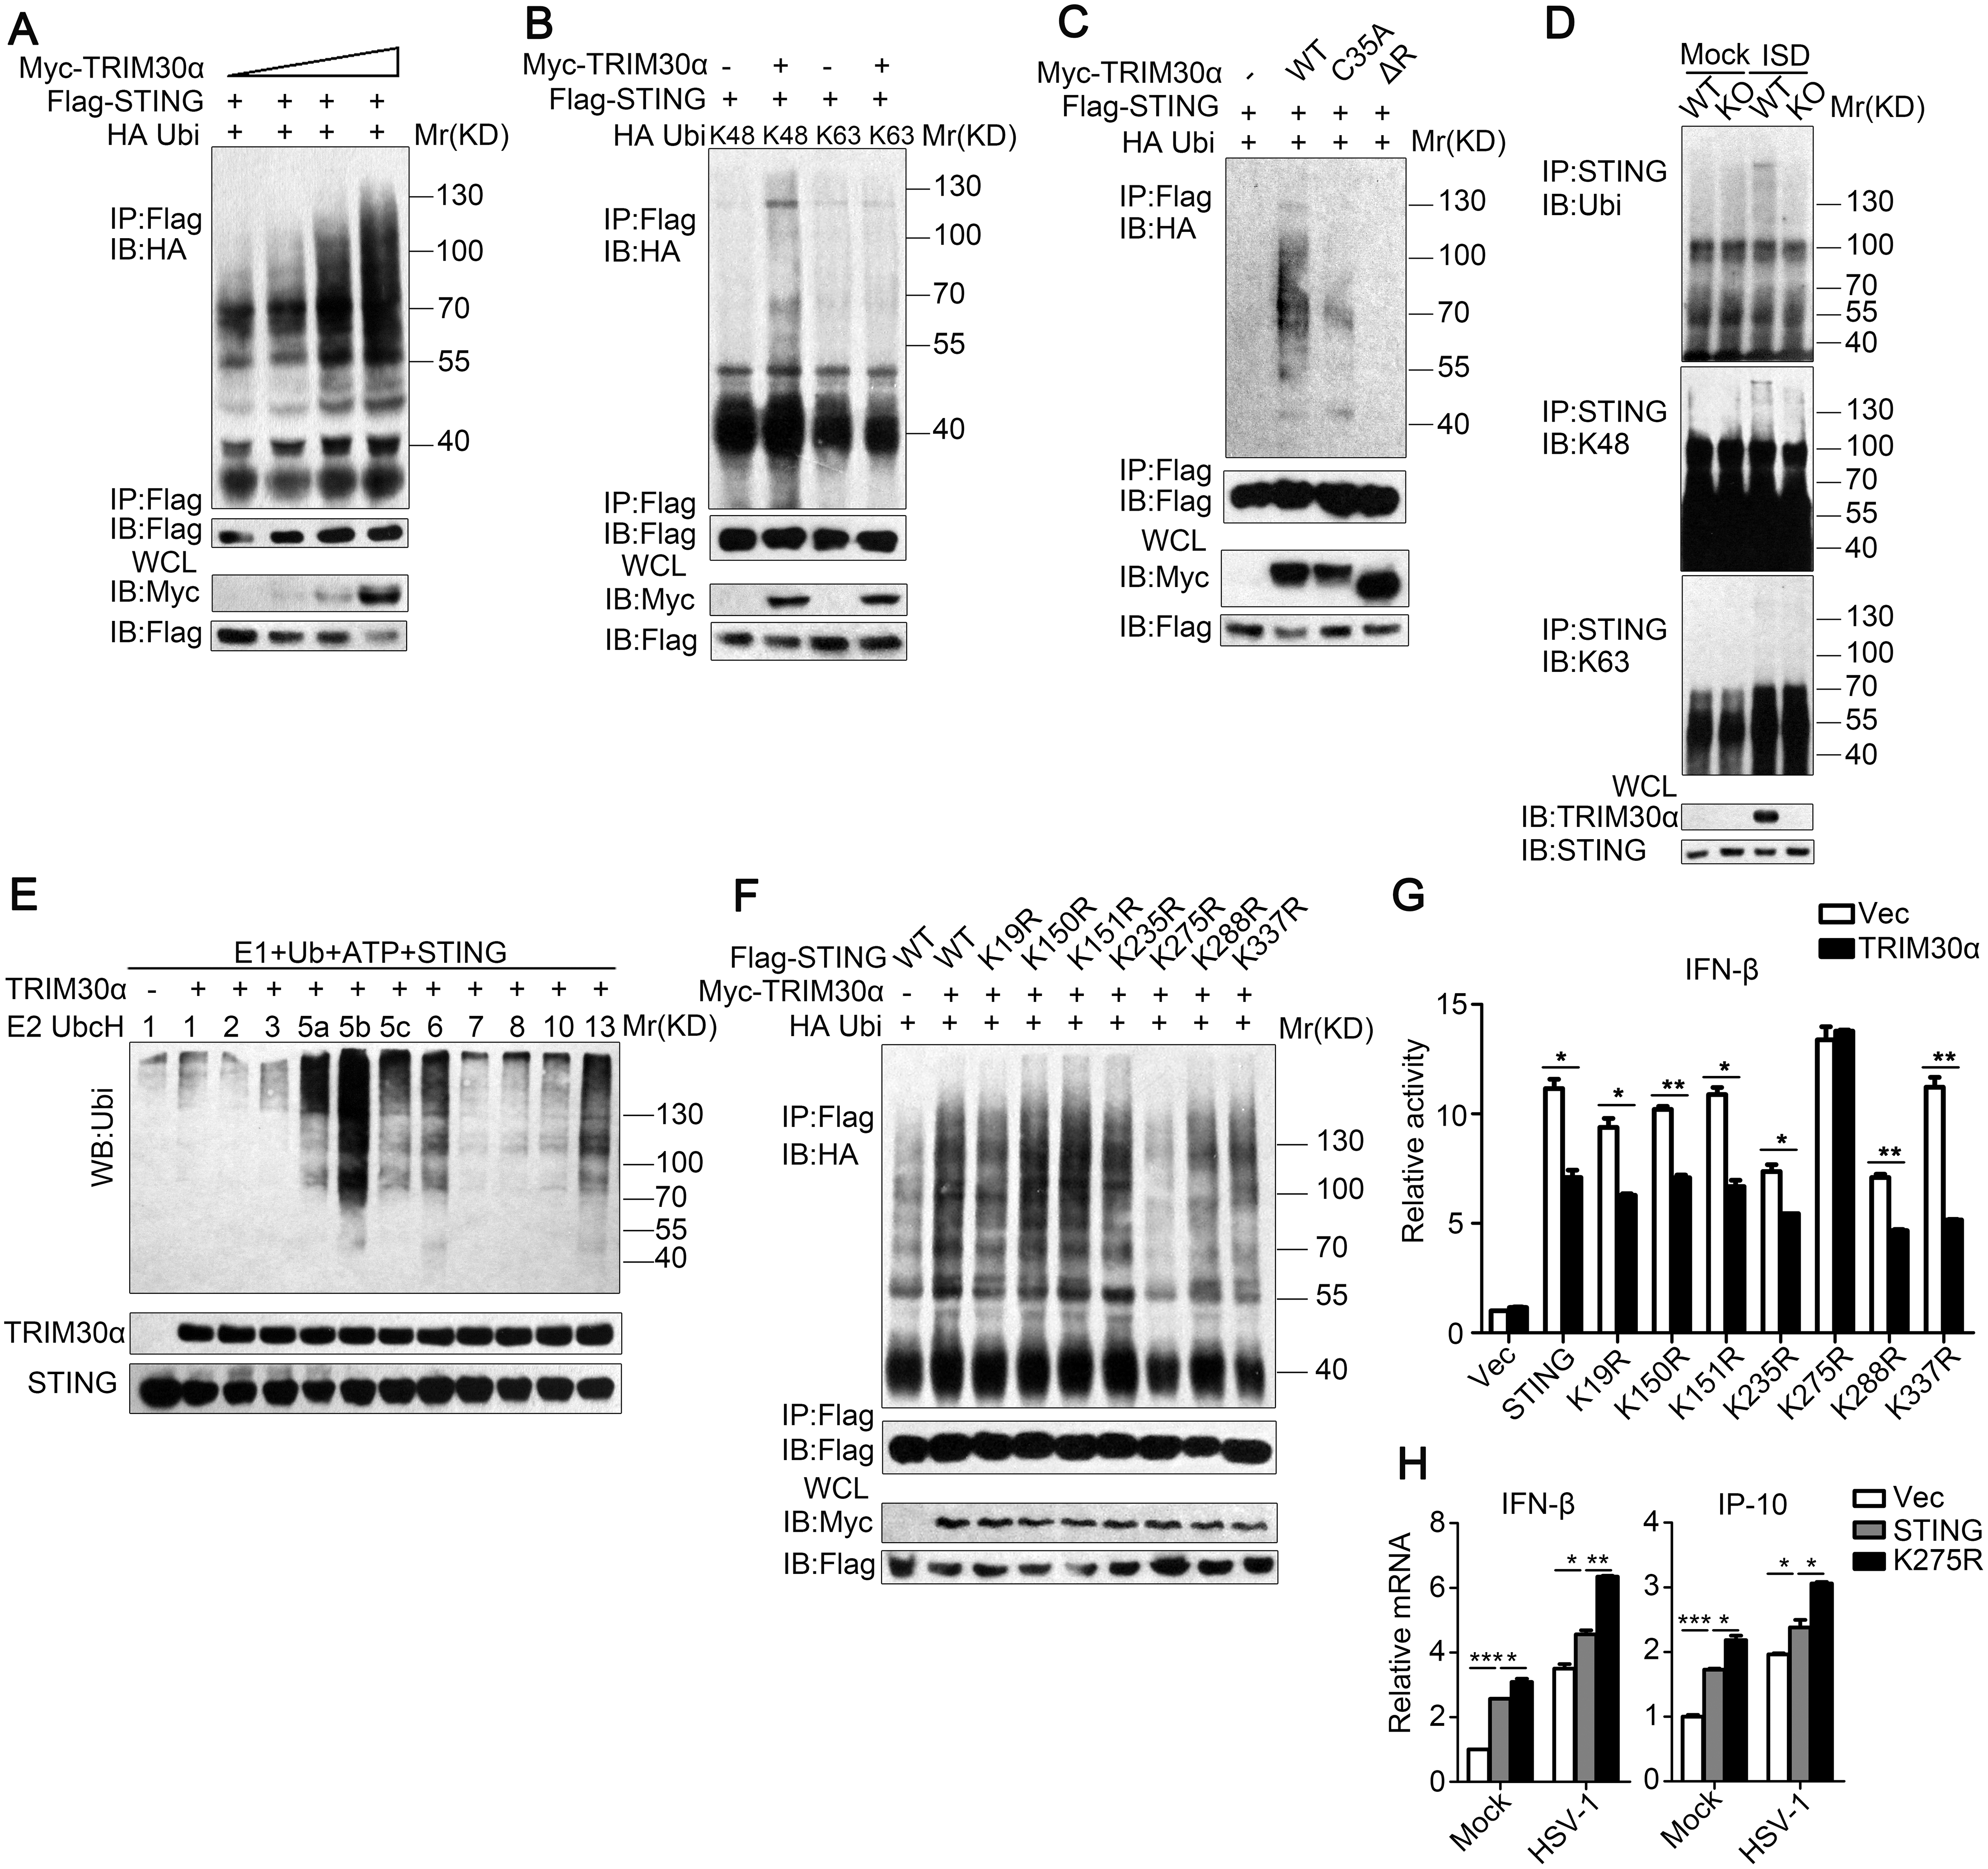 TRIM30α is an E3 ubiquitin ligase and targets STING for K48-mediated ubiquitination at Lys275.